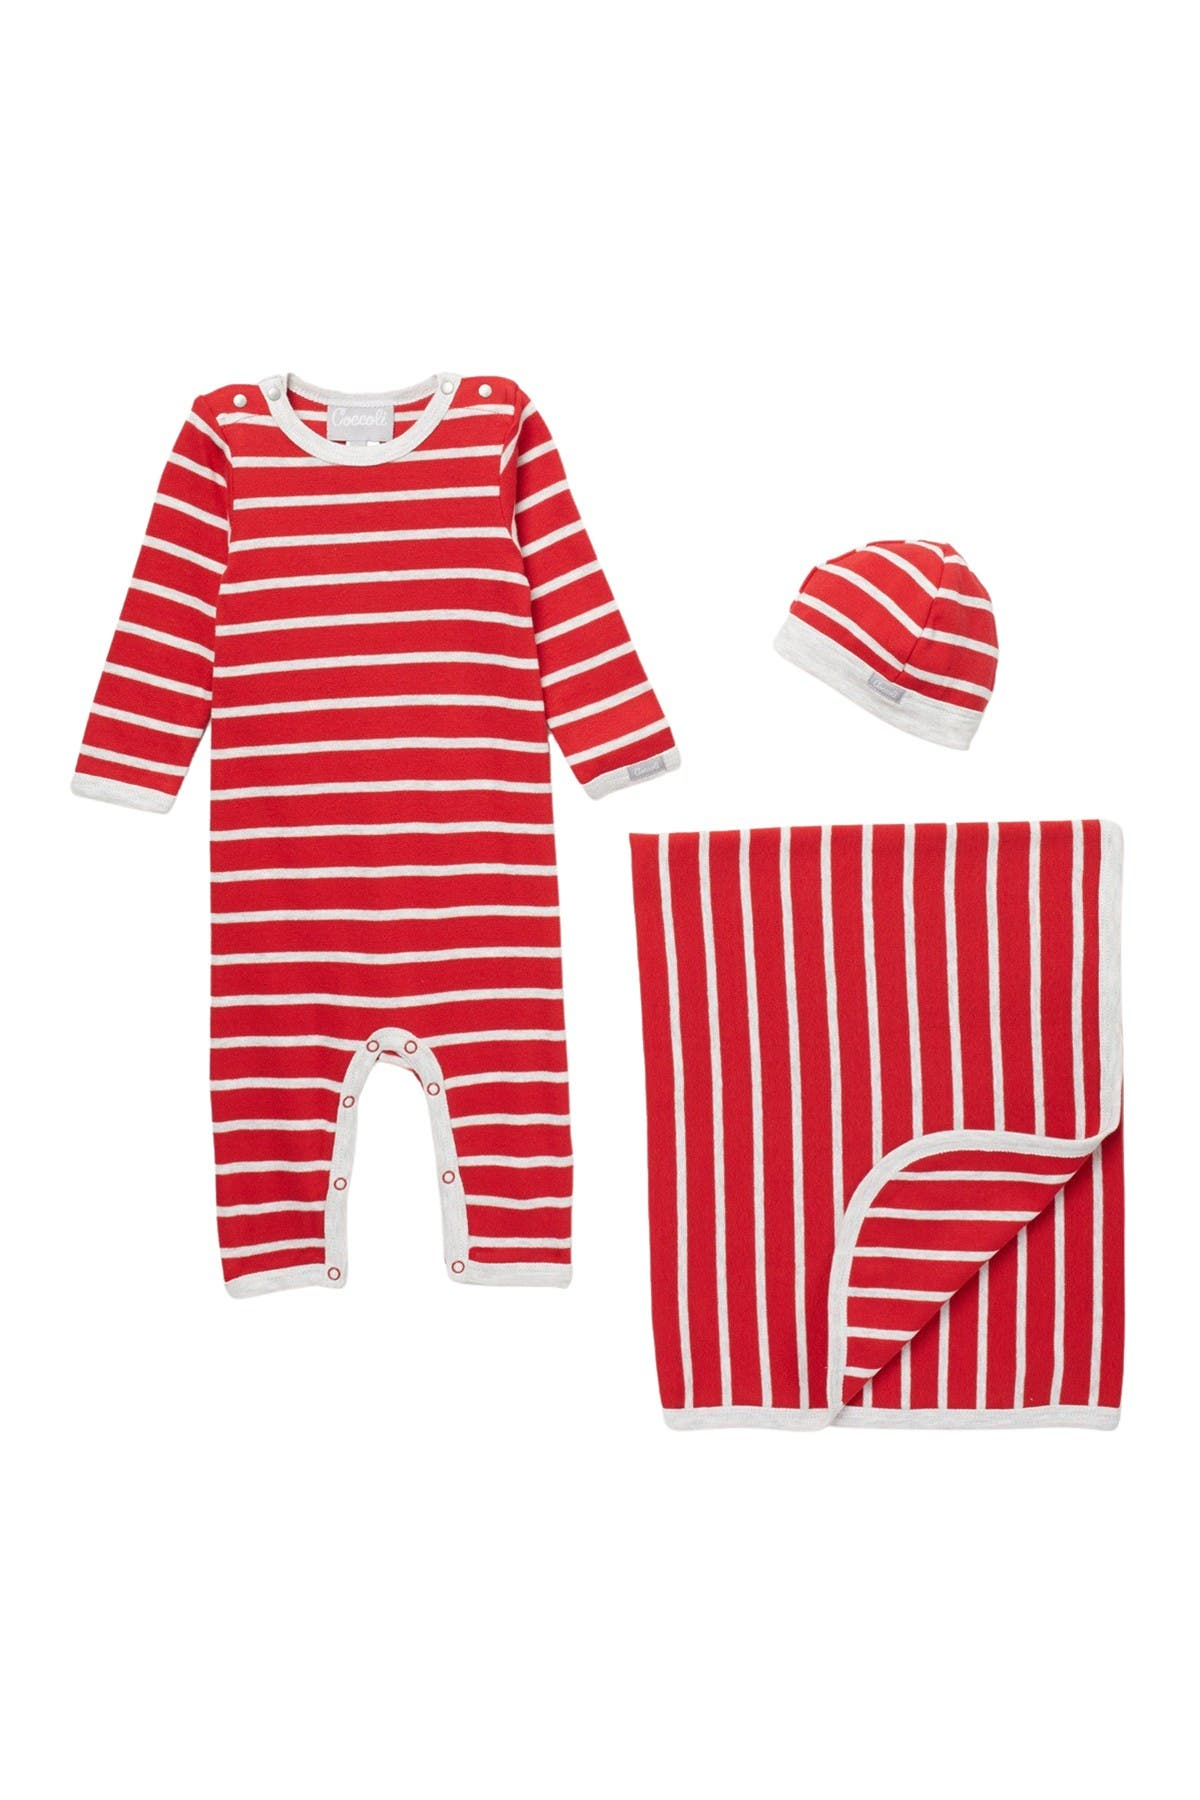 Image of Coccoli Striped Footie, Cap, & Blanket Set